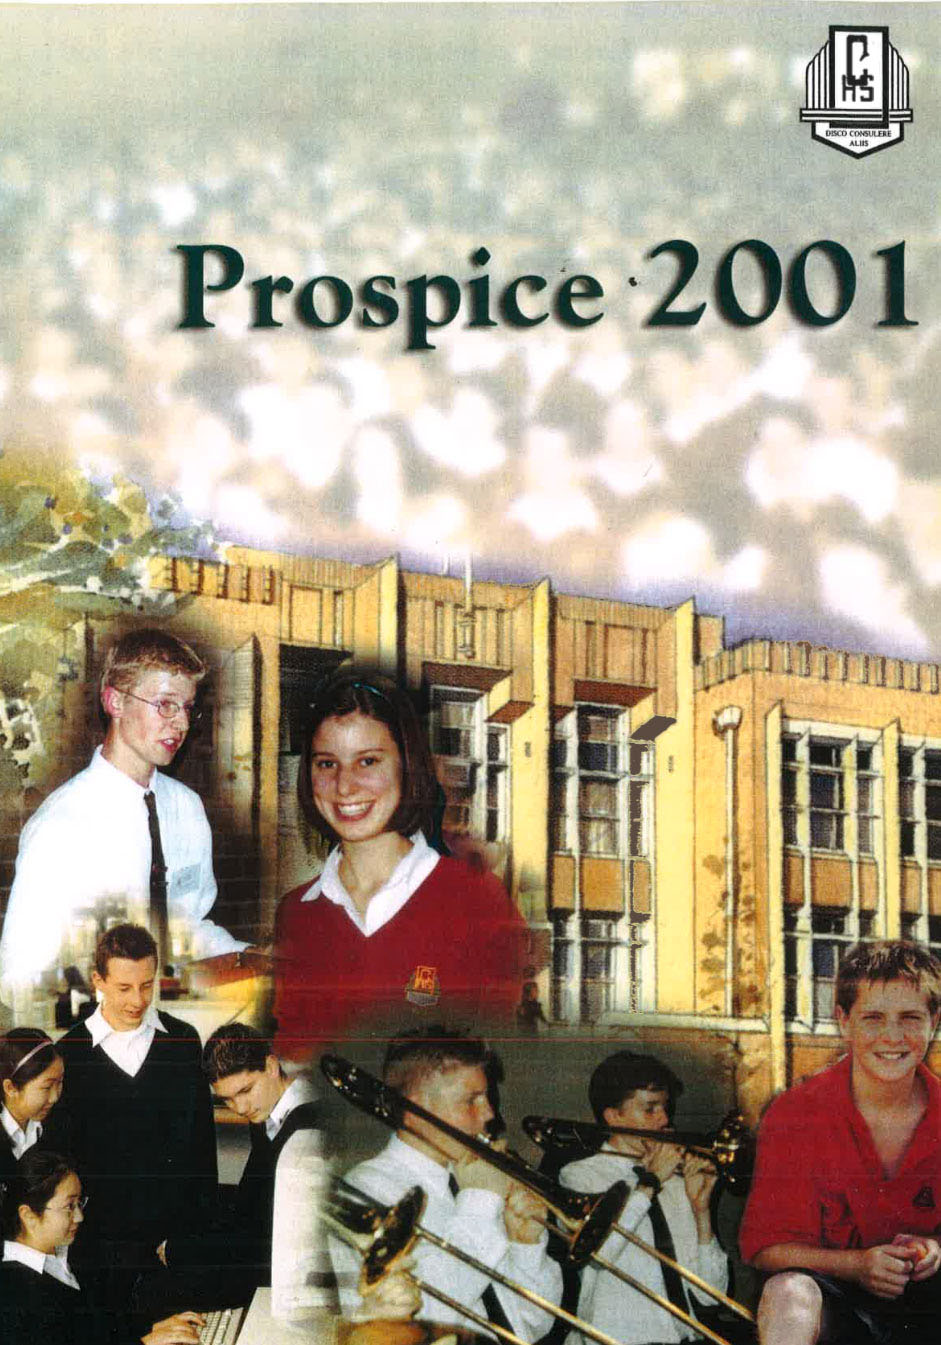 Prospice 2001